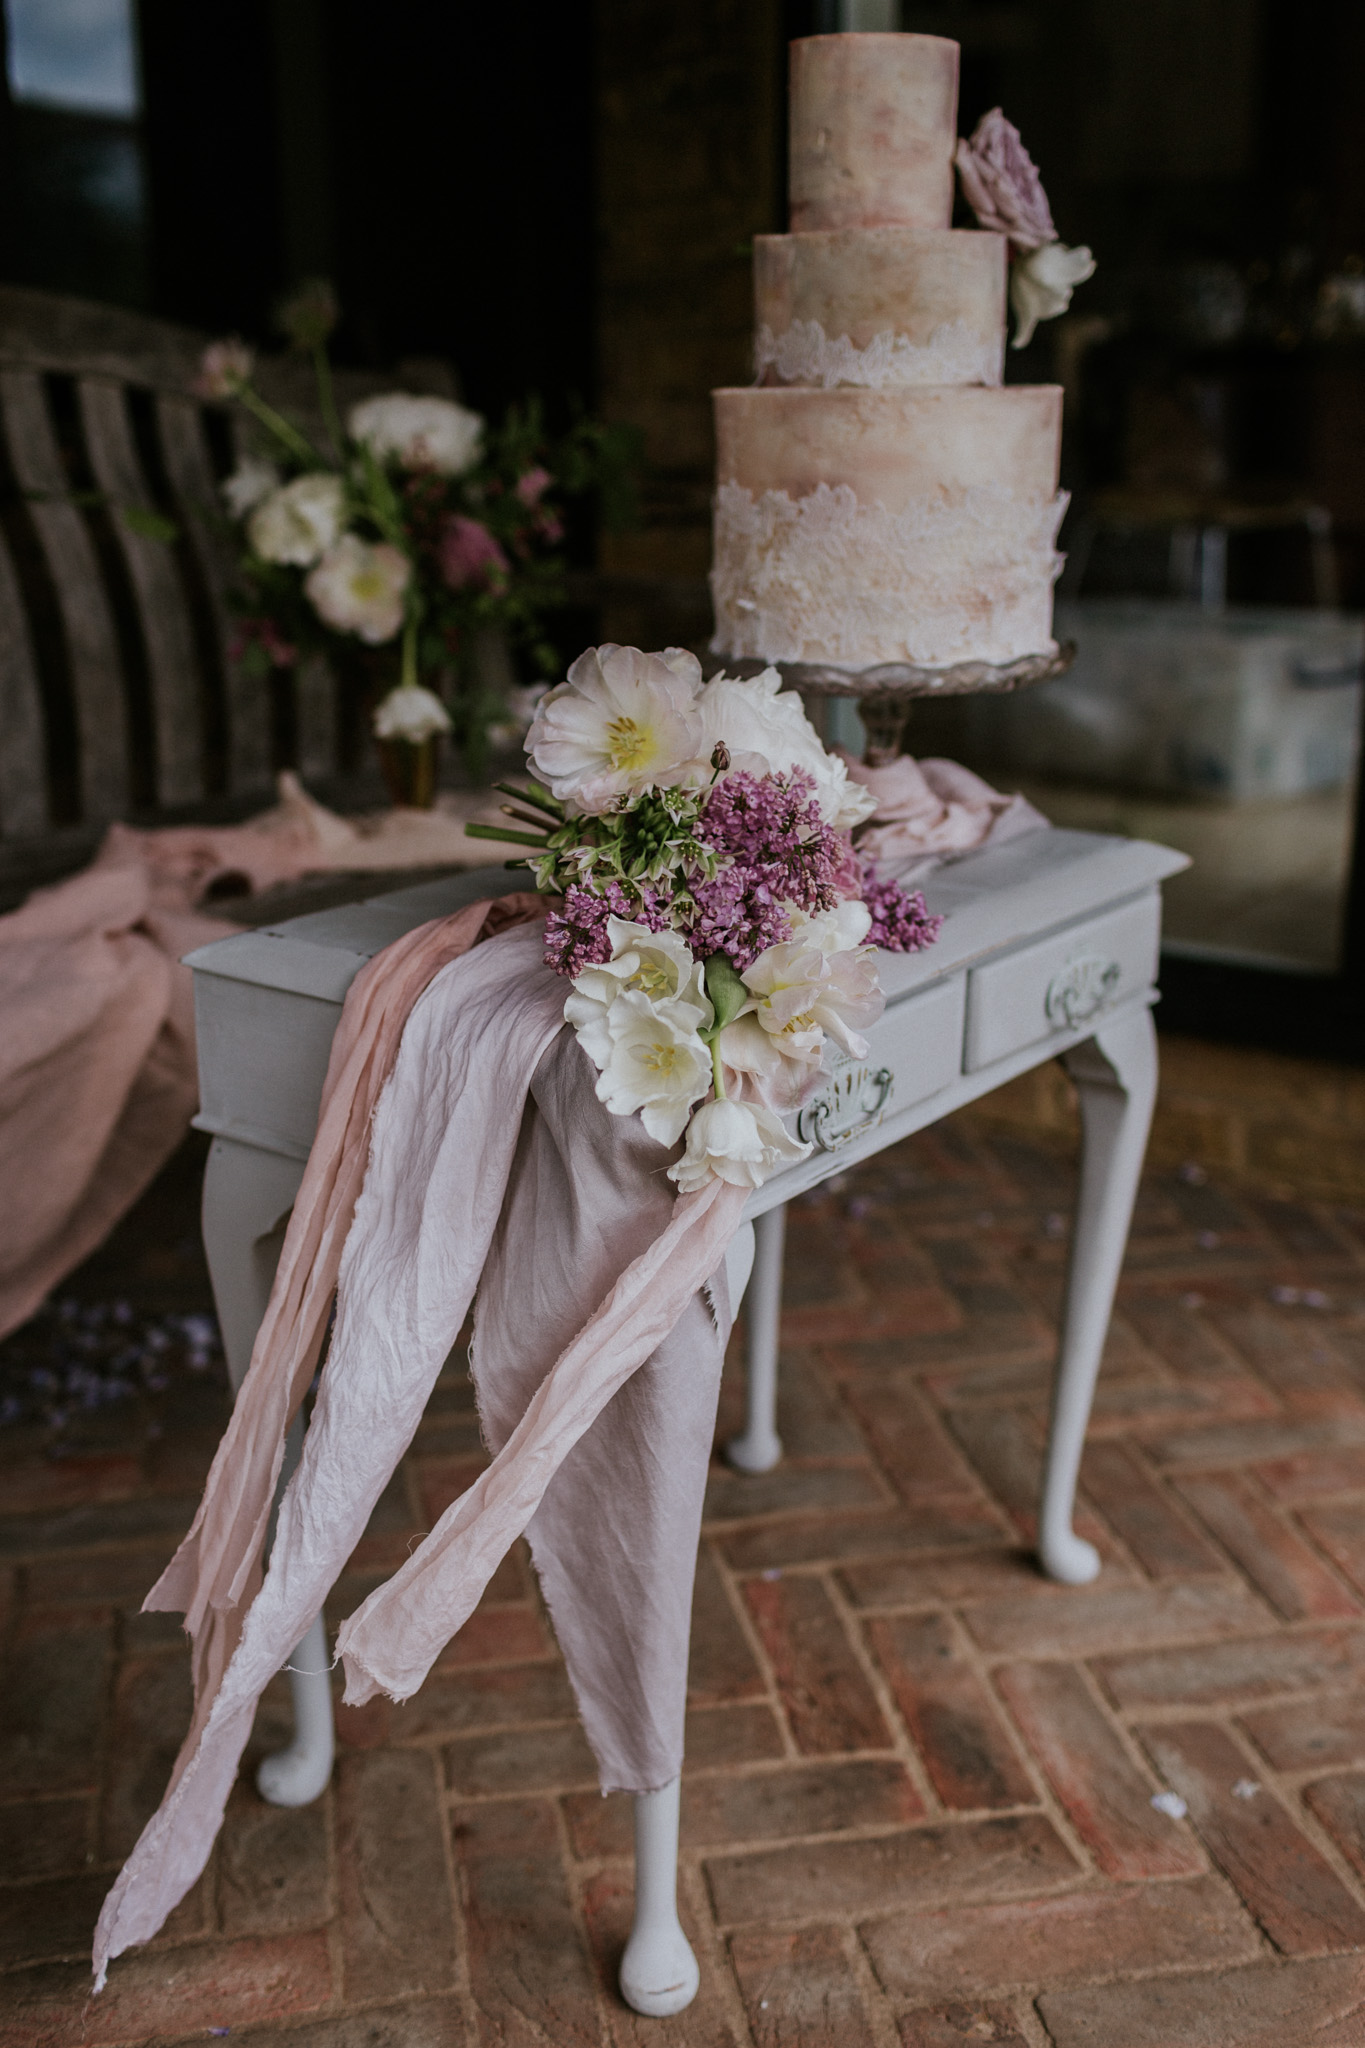 Three tier textured buttercream wedding cake with edible lace and rose gold tones. Photo by Maja Tsolo